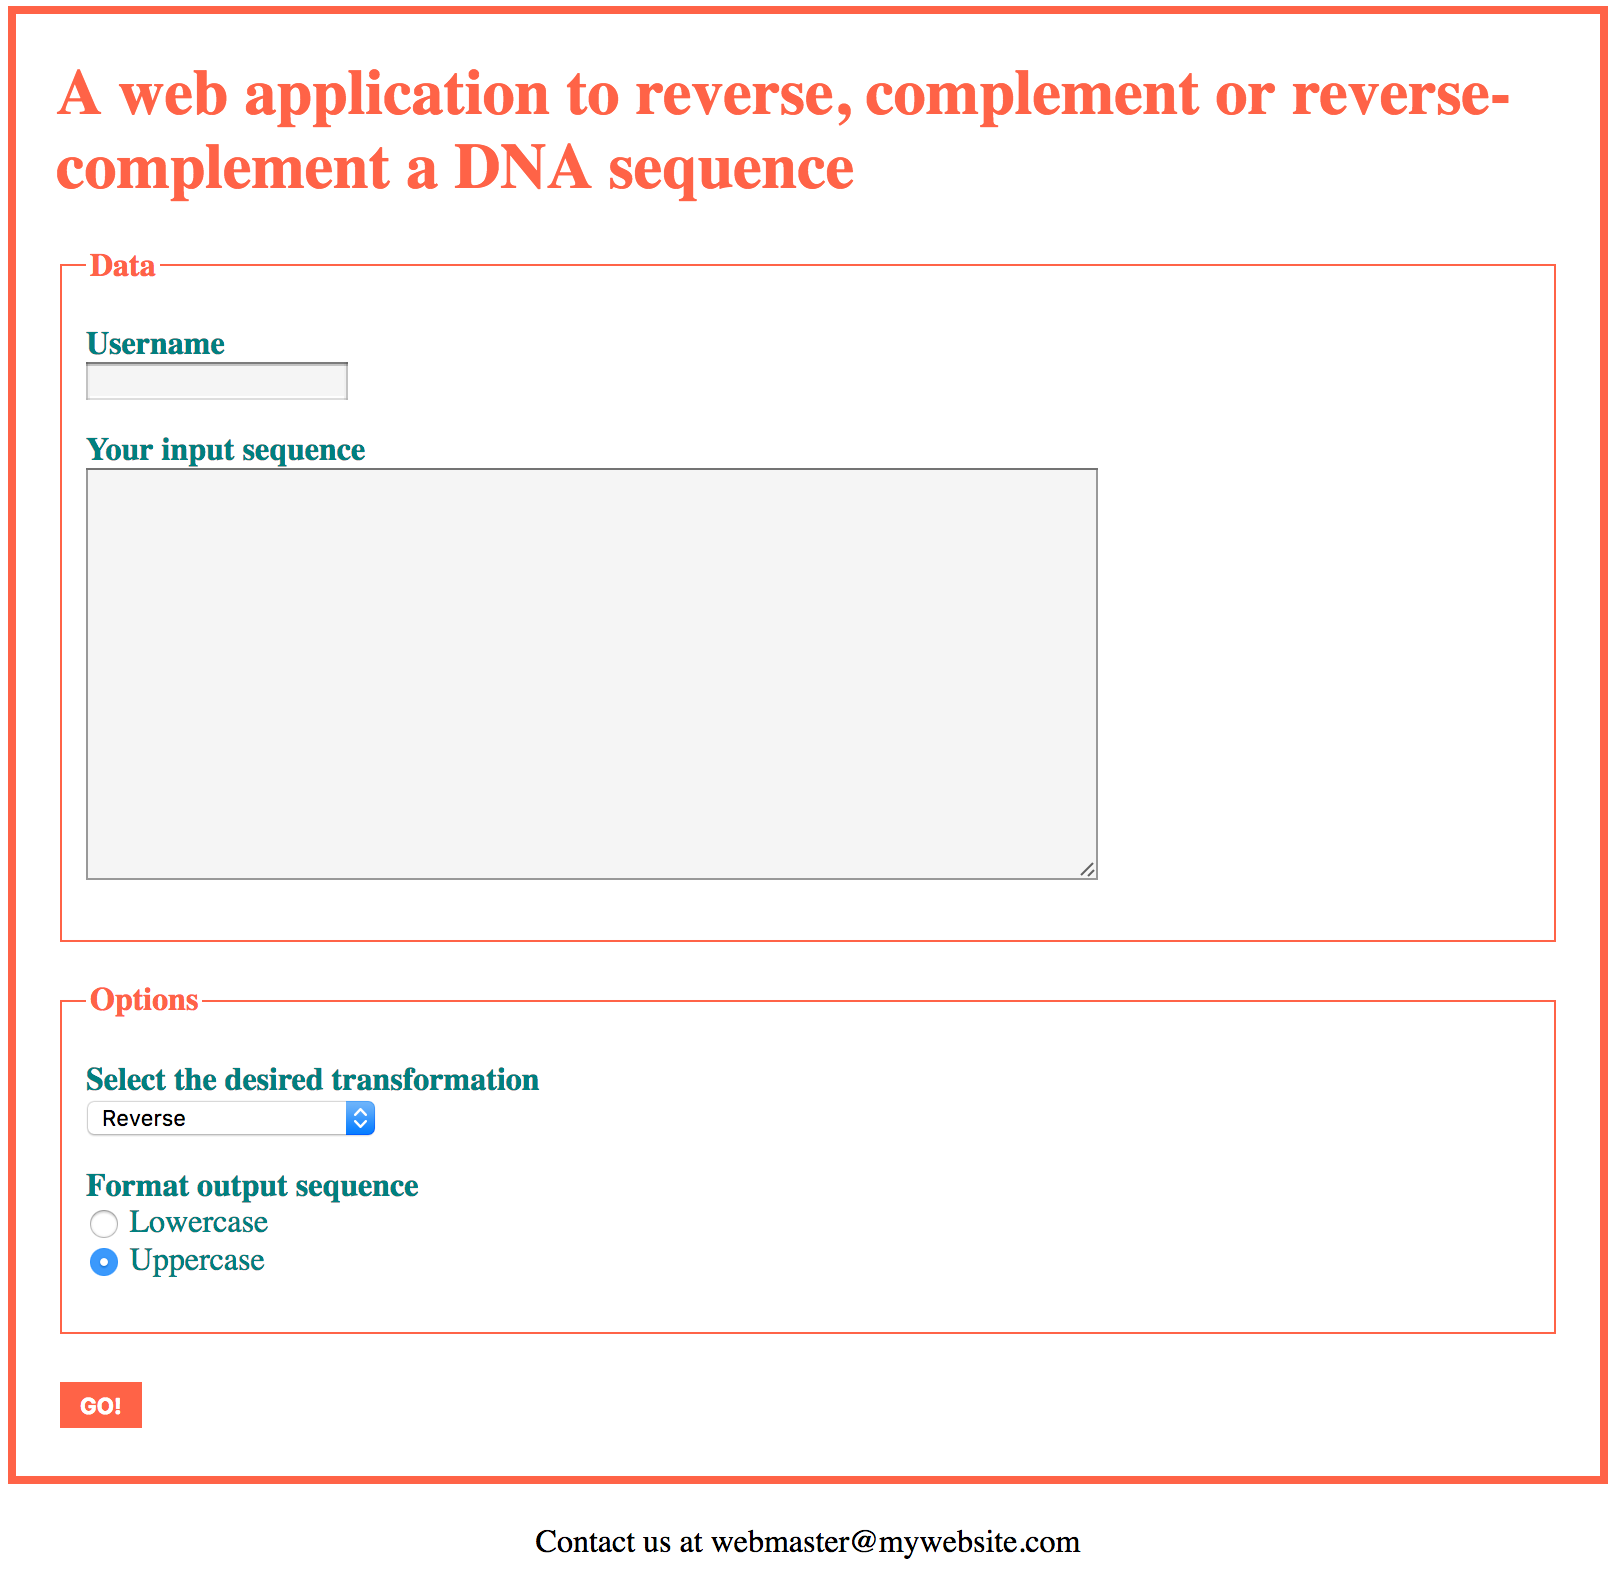 A web form for a reverse-complement web application